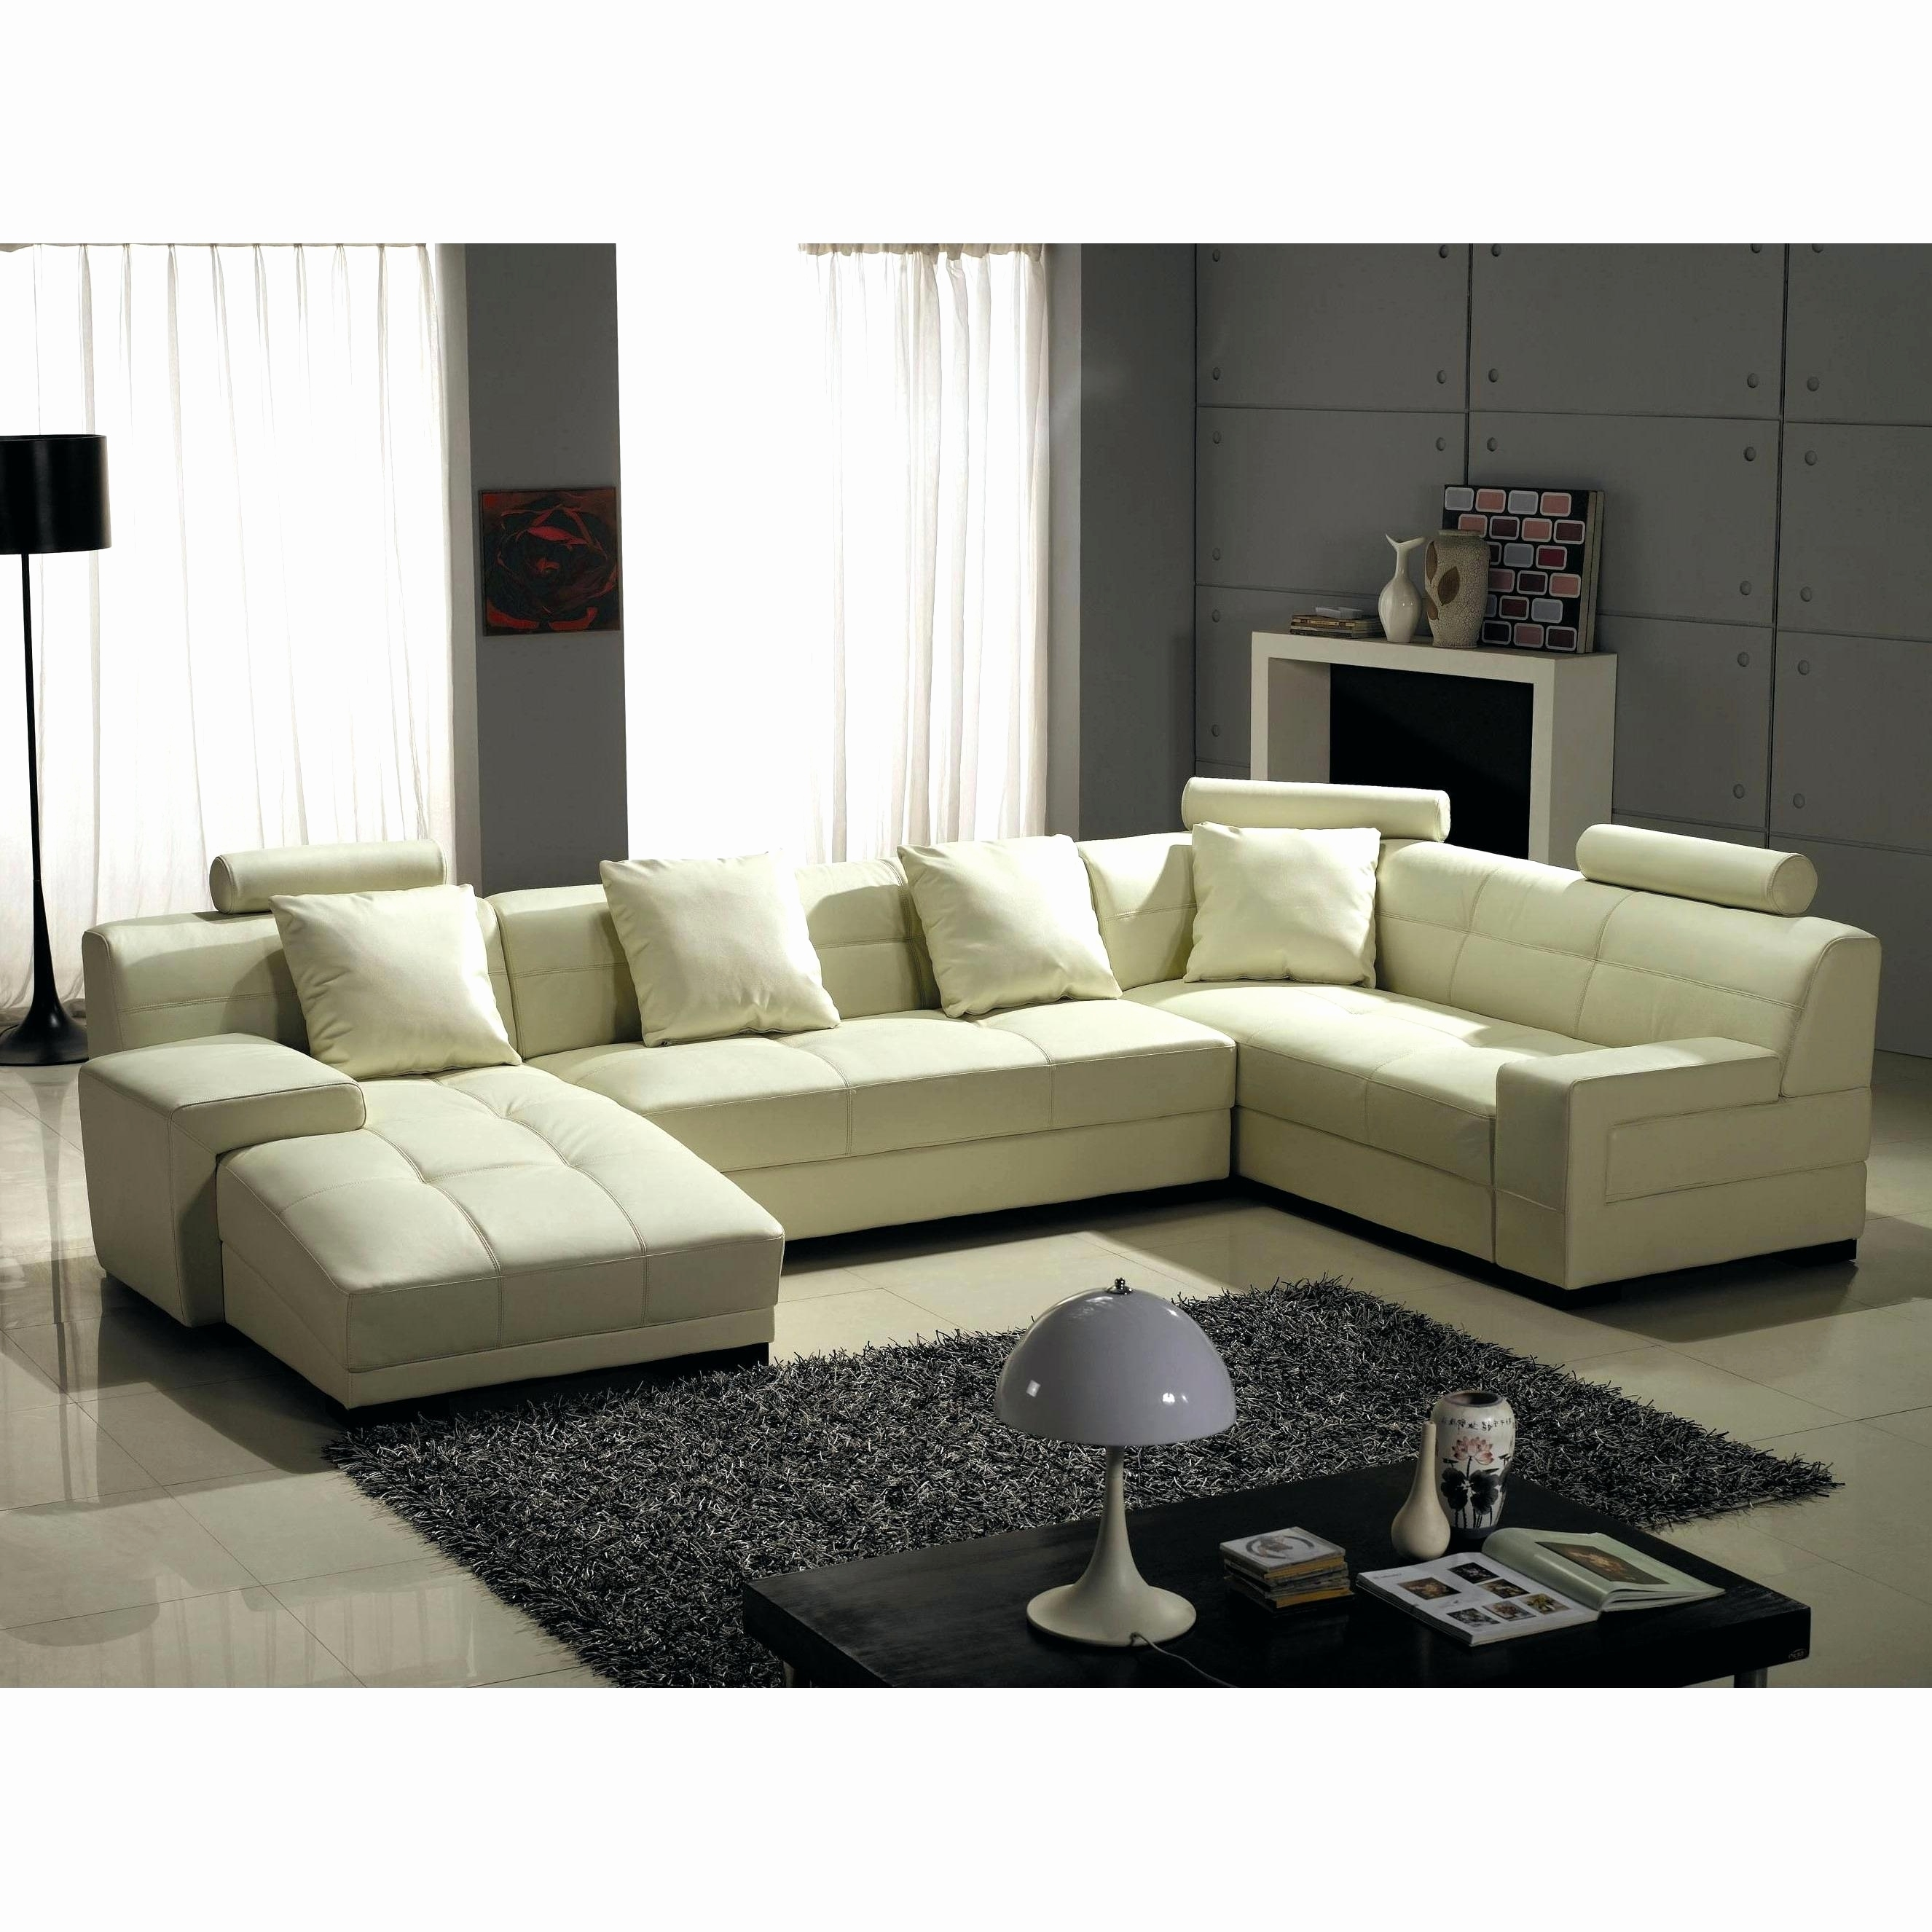 New Sectional Couch For Sale 2018 – Couches And Sofas Ideas With Halifax Sectional Sofas (Image 6 of 10)